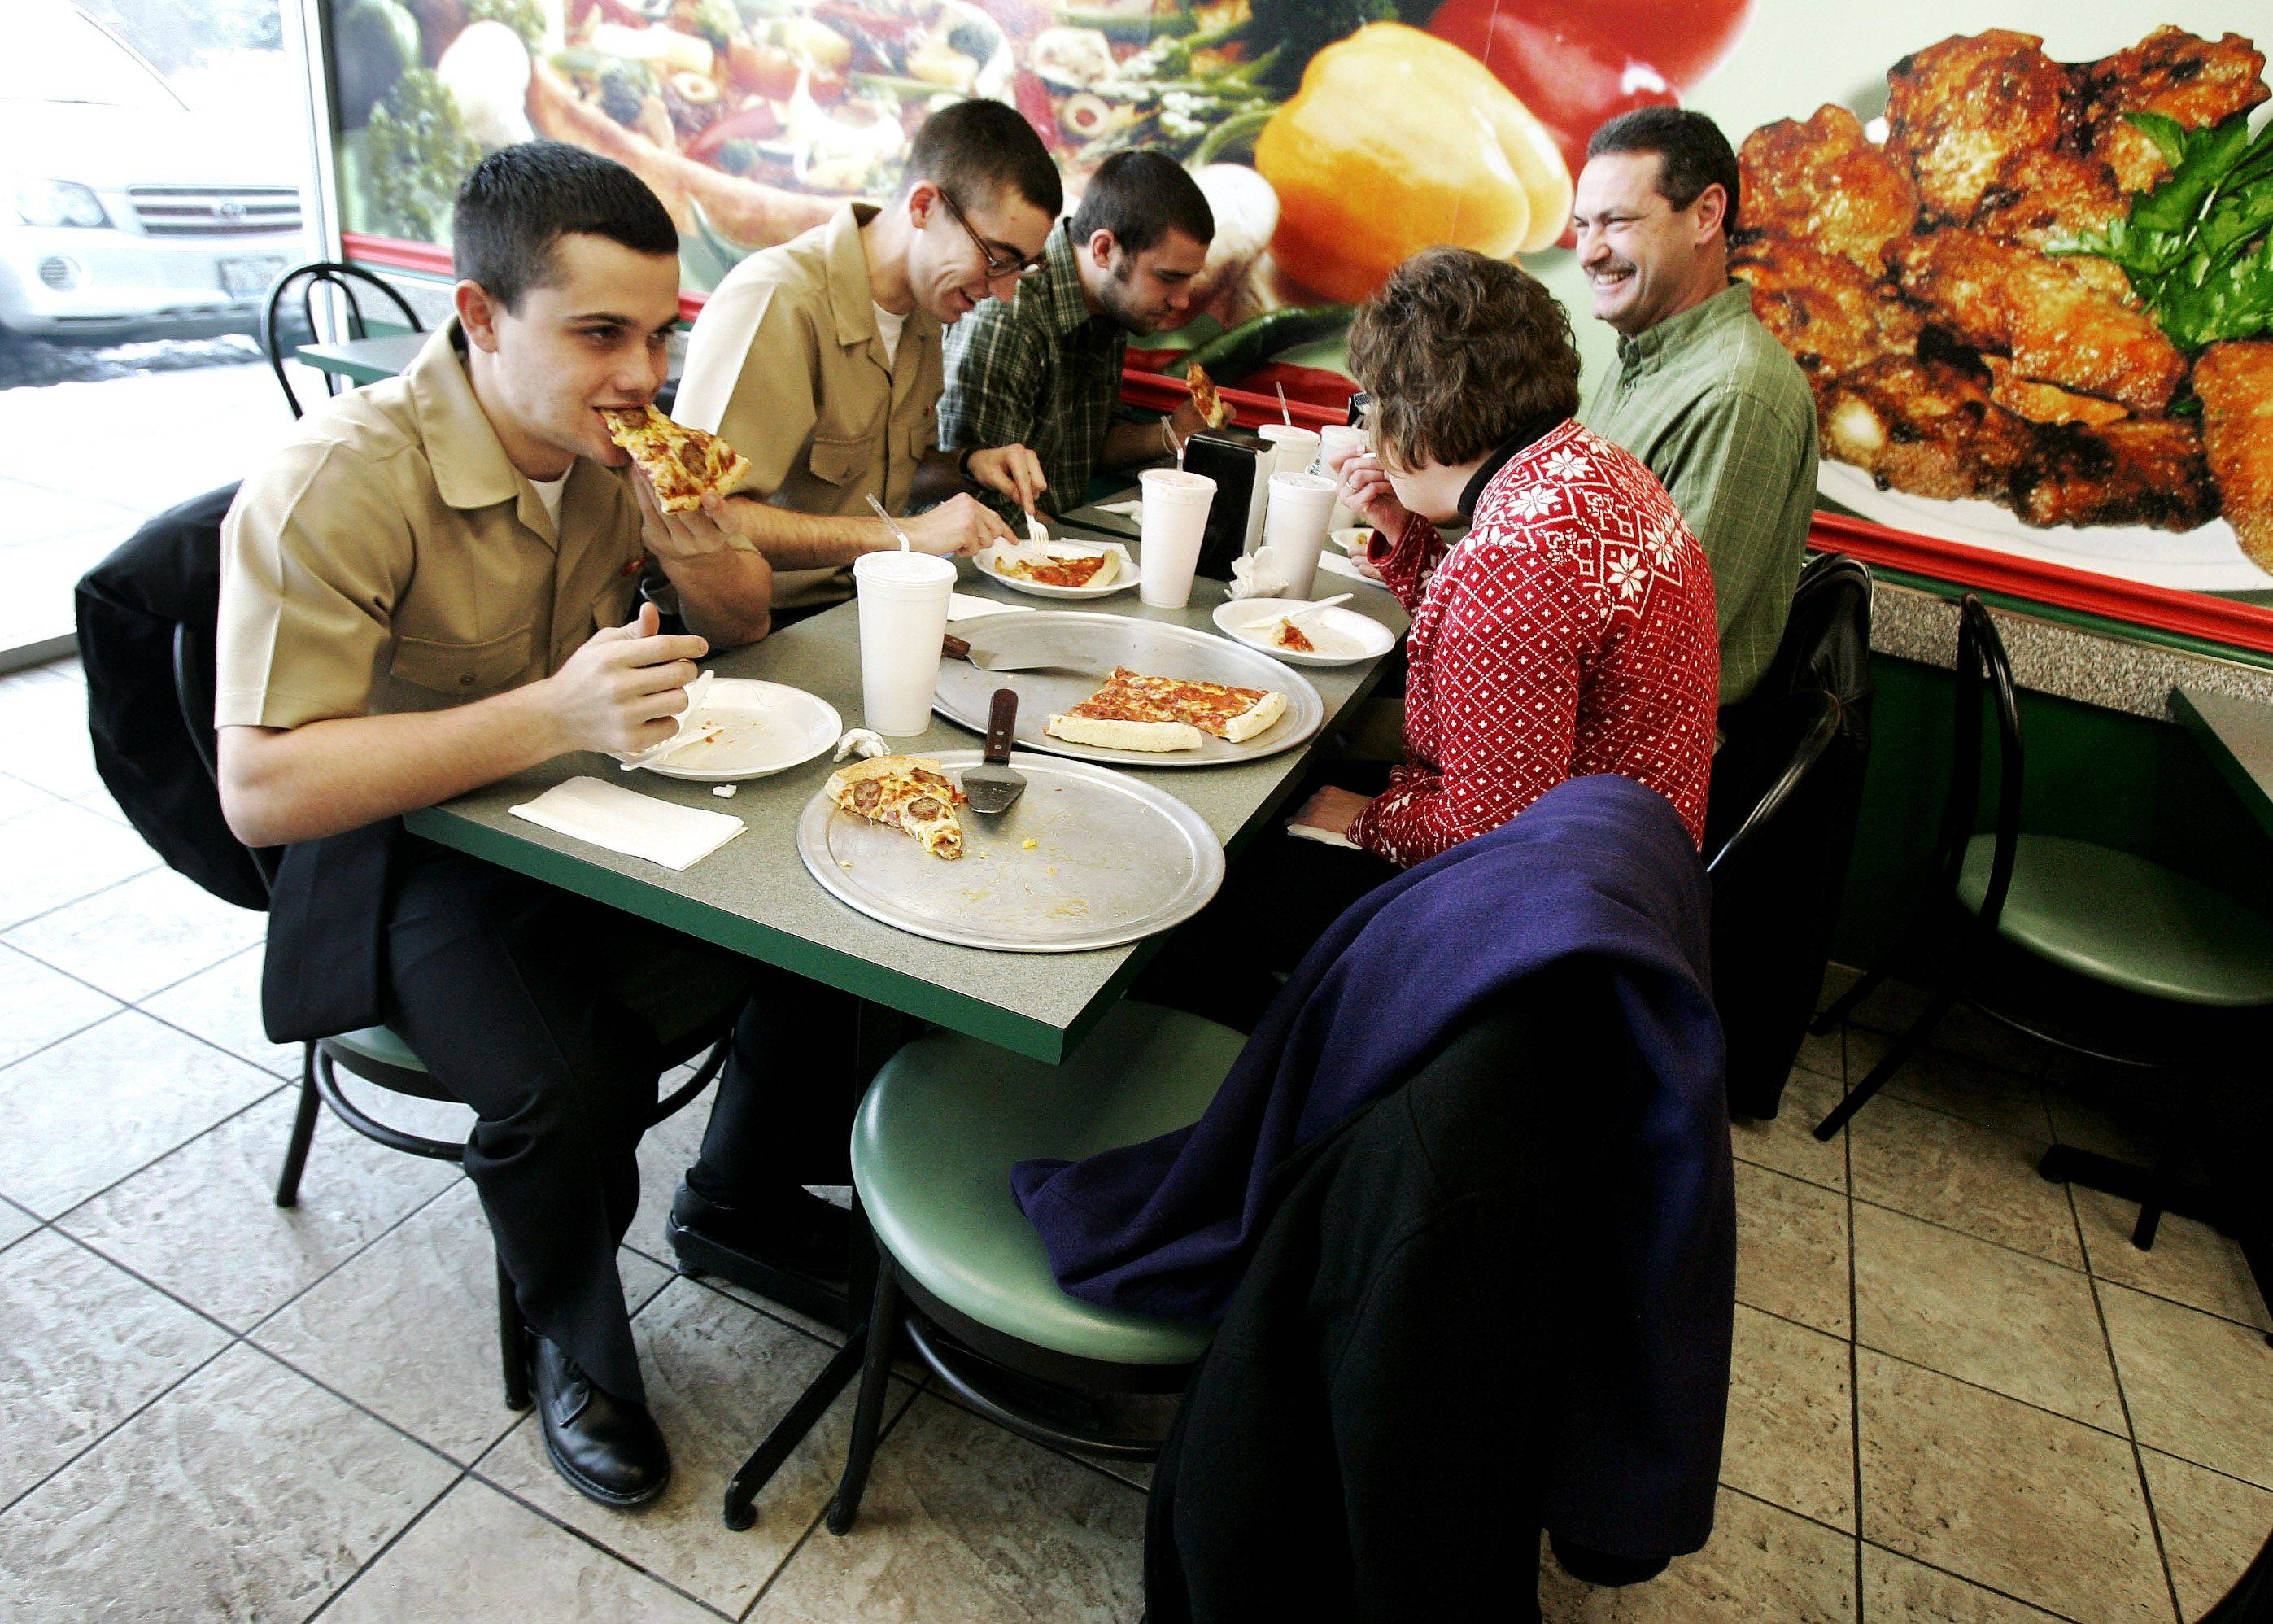 Pedro Santana, left of Houston, Texas, joins the Radcliff family from Ohio from left, Brandon, Ryan, Debbie, and Bob as they enjoy pizza for lunch at Sarpino's Pizzeria in Riverwoods. The family was participating in the Adopt-A-Sailor program from Great Lakes Naval Base on Christmas Day.